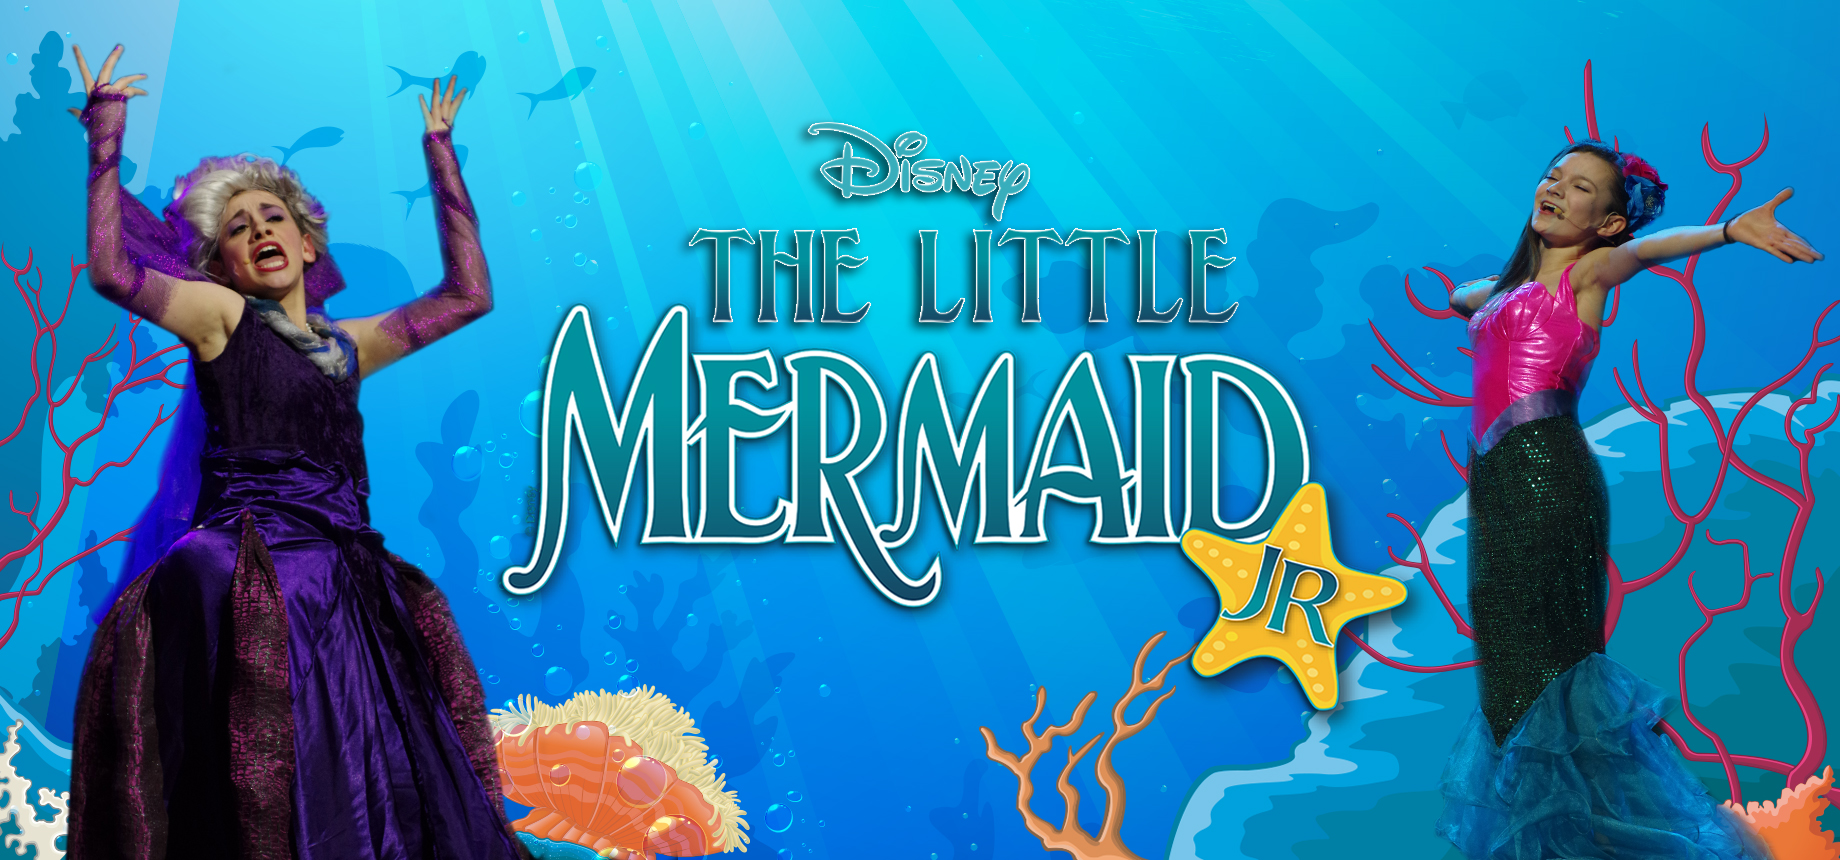 Disneys The Little Mermaid JR